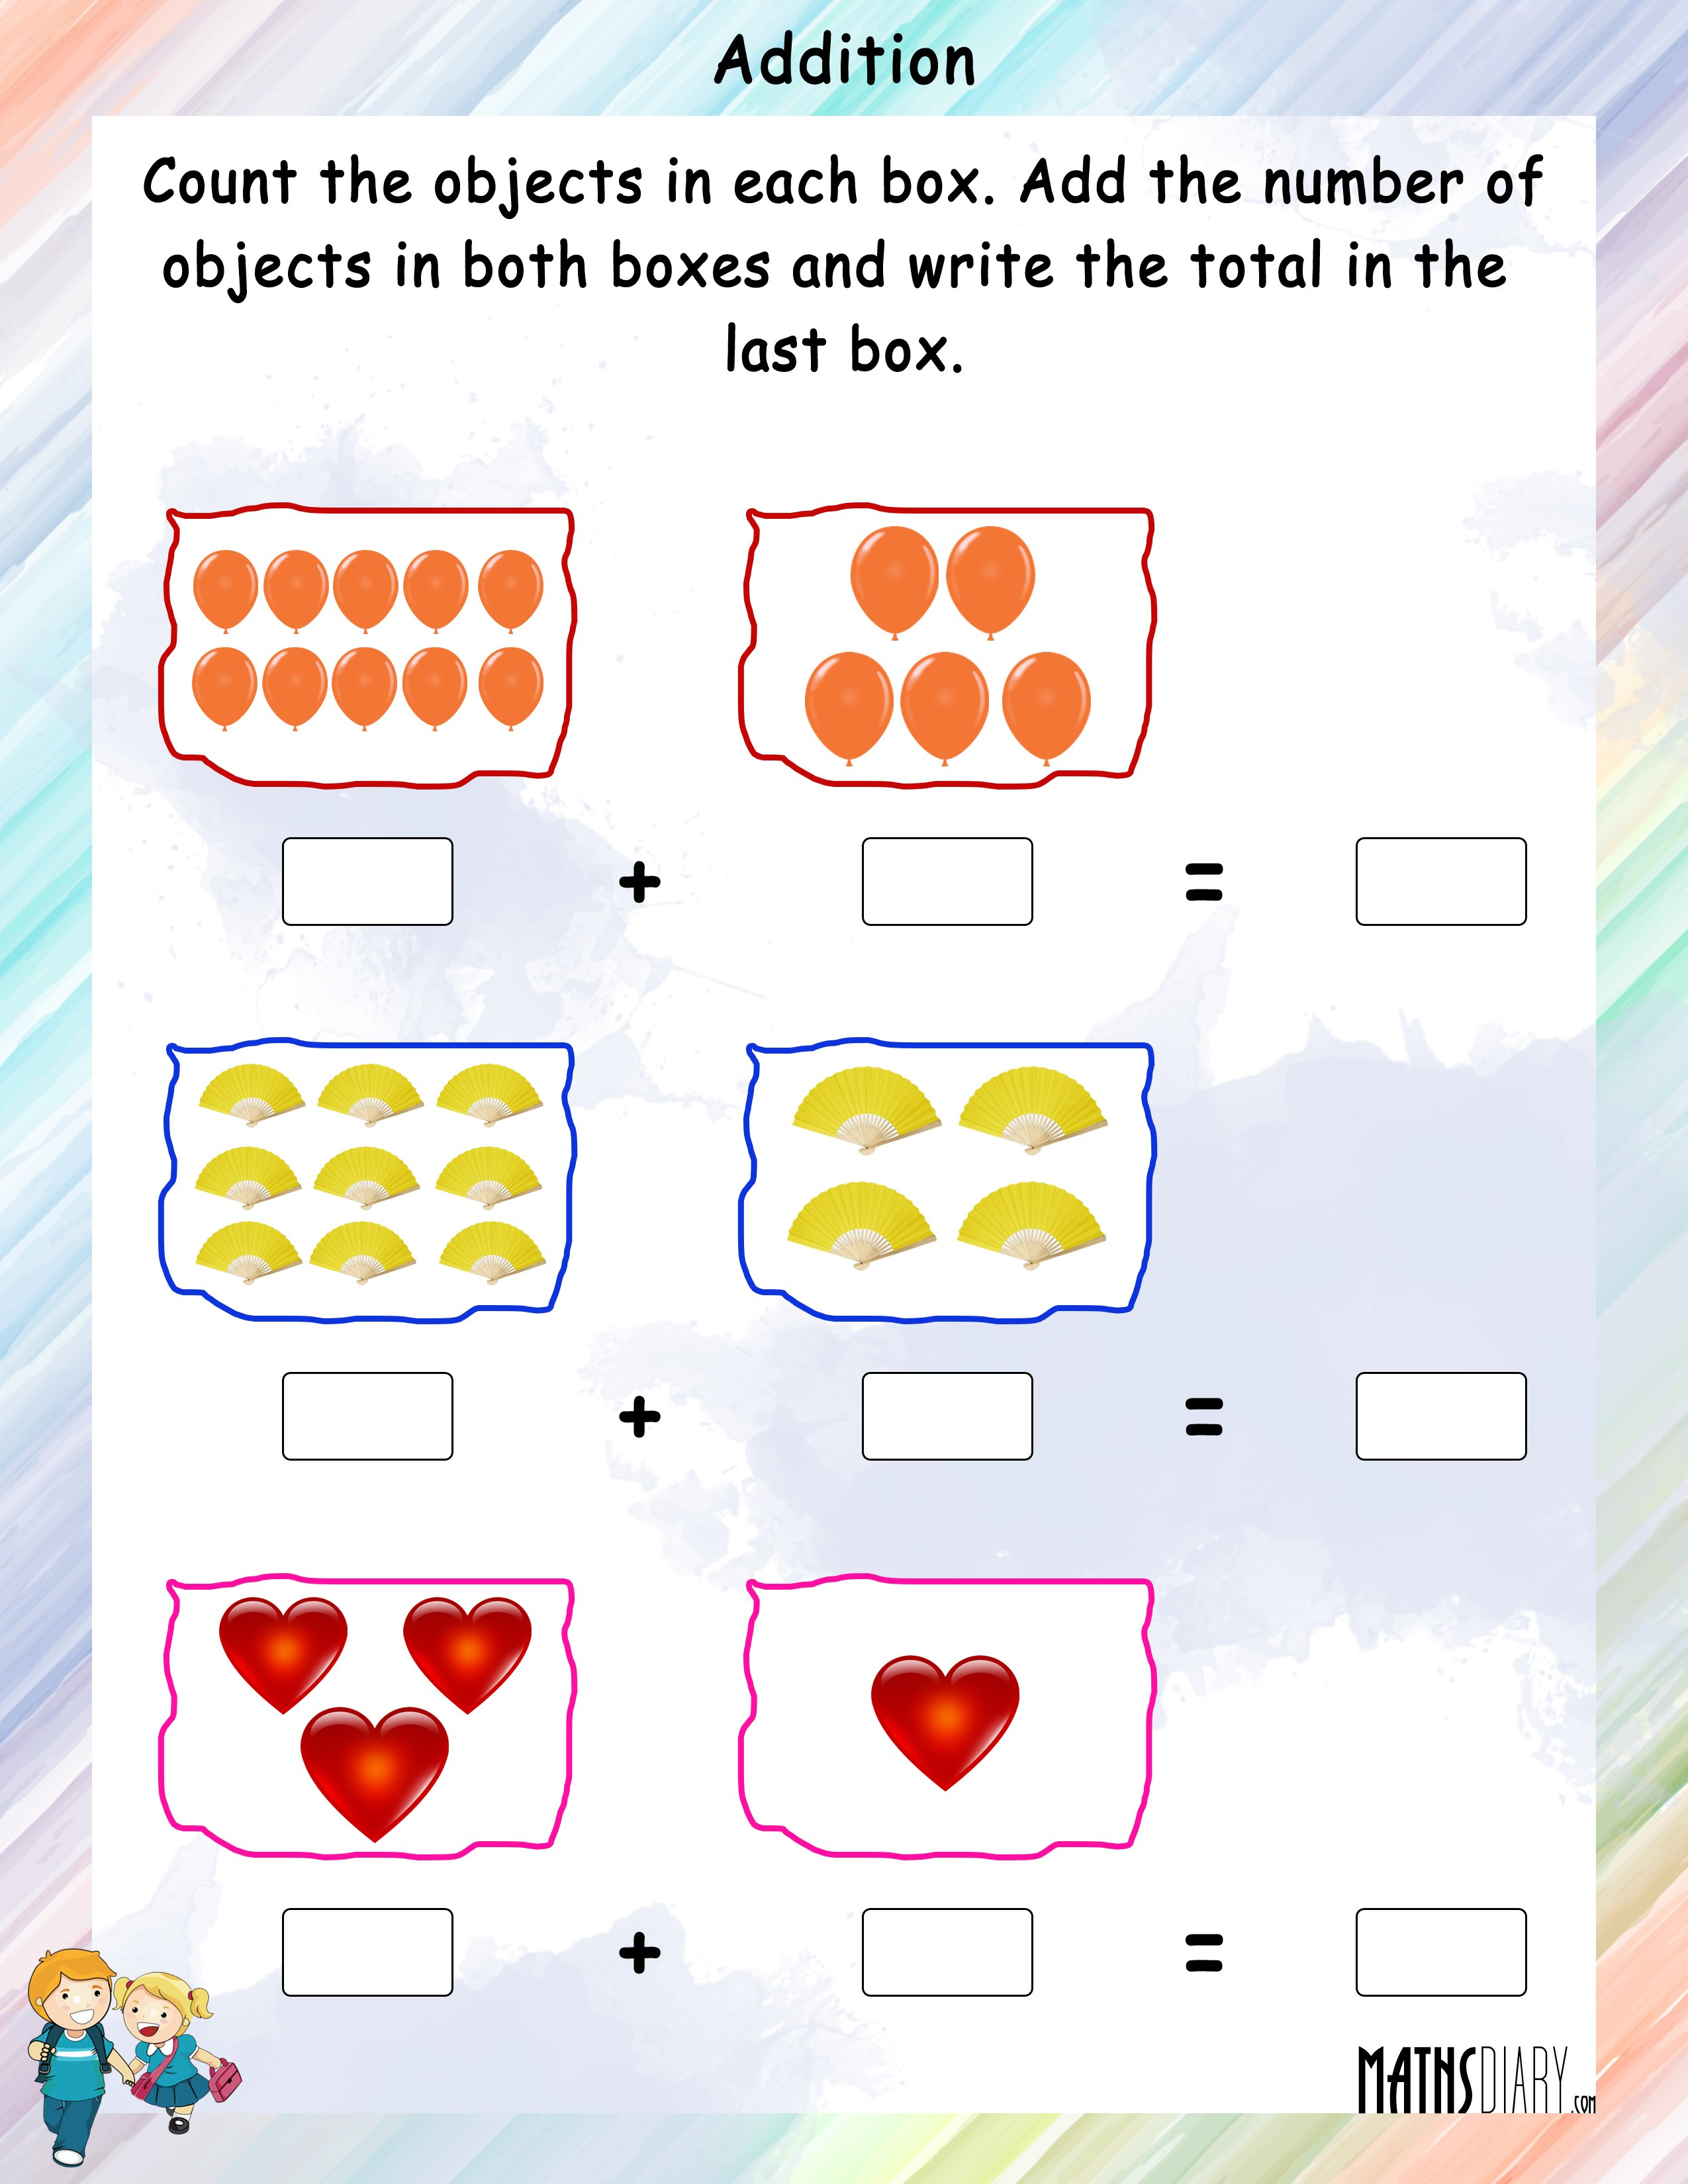 Worksheet For Nursery In Math